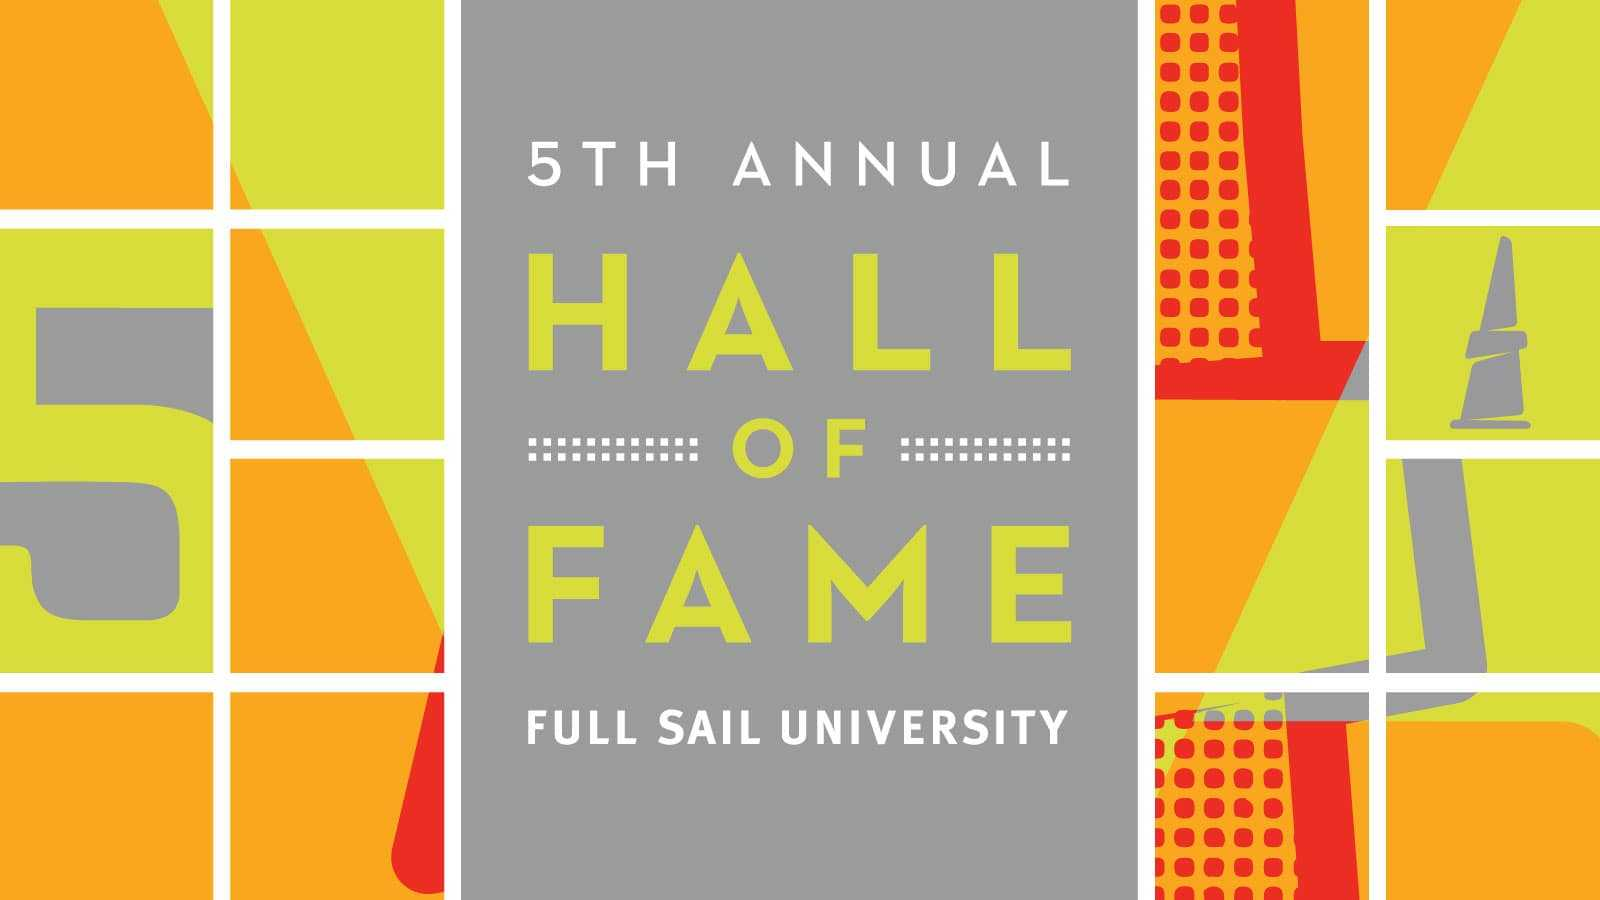 Full Sail Welcomes Industry Leaders, VIPs, and Celebrity Guests to Fifth Annual Hall of Fame Week - Hero image